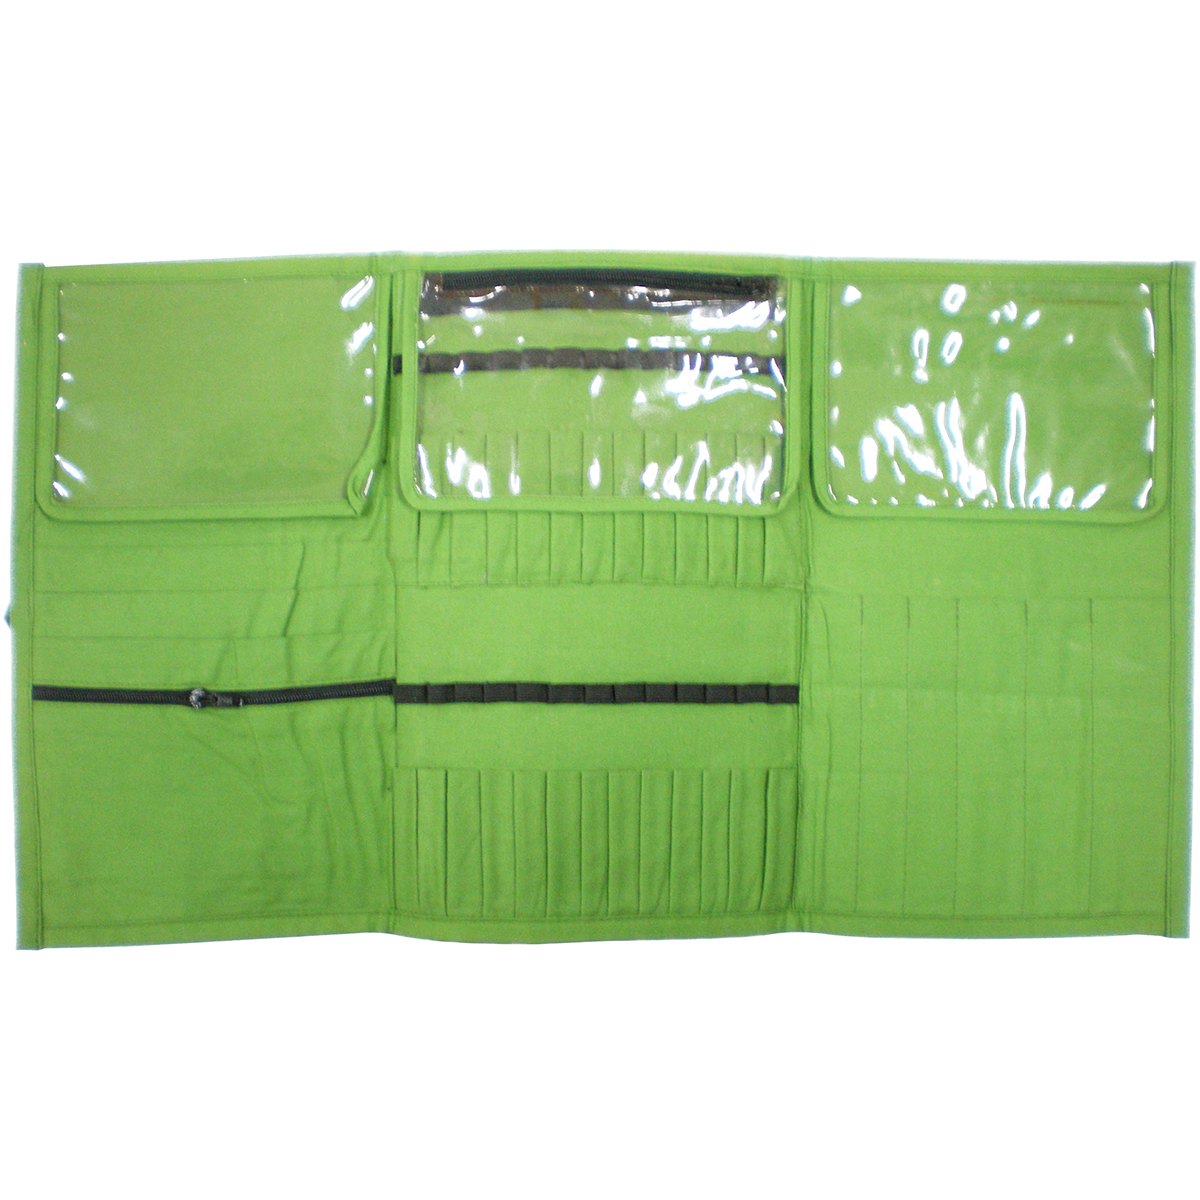 "Premier Yarn Needle and Notions Organizer, 10.75"" x 6.5"" x .5"", Green"